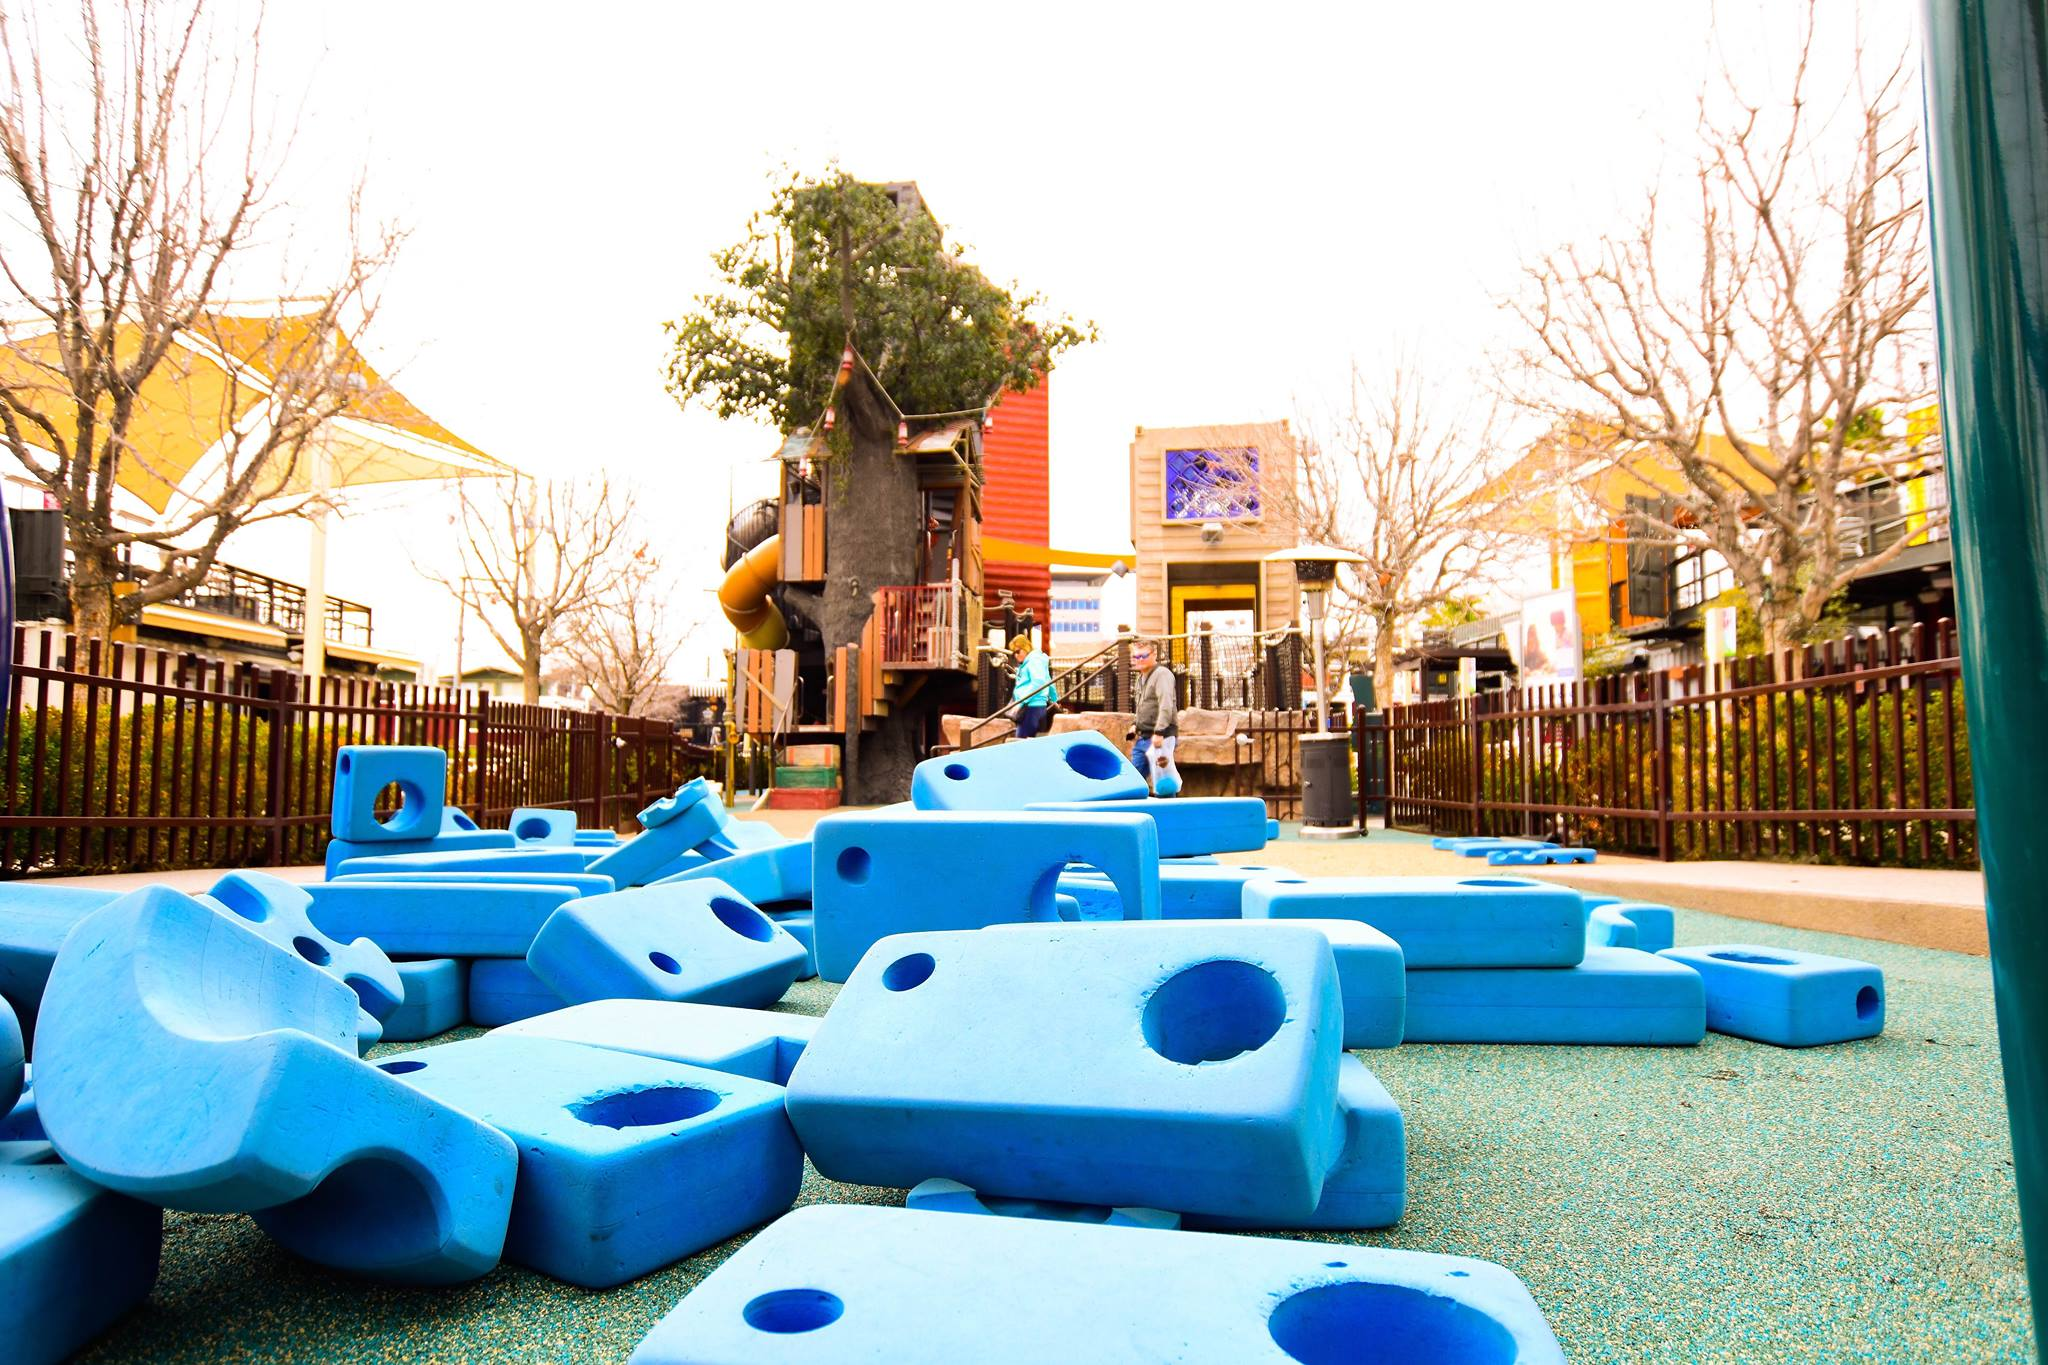 Treehouse and Playzone, Container park, best free and cheap kids, large foam blocks and kids climbing tree